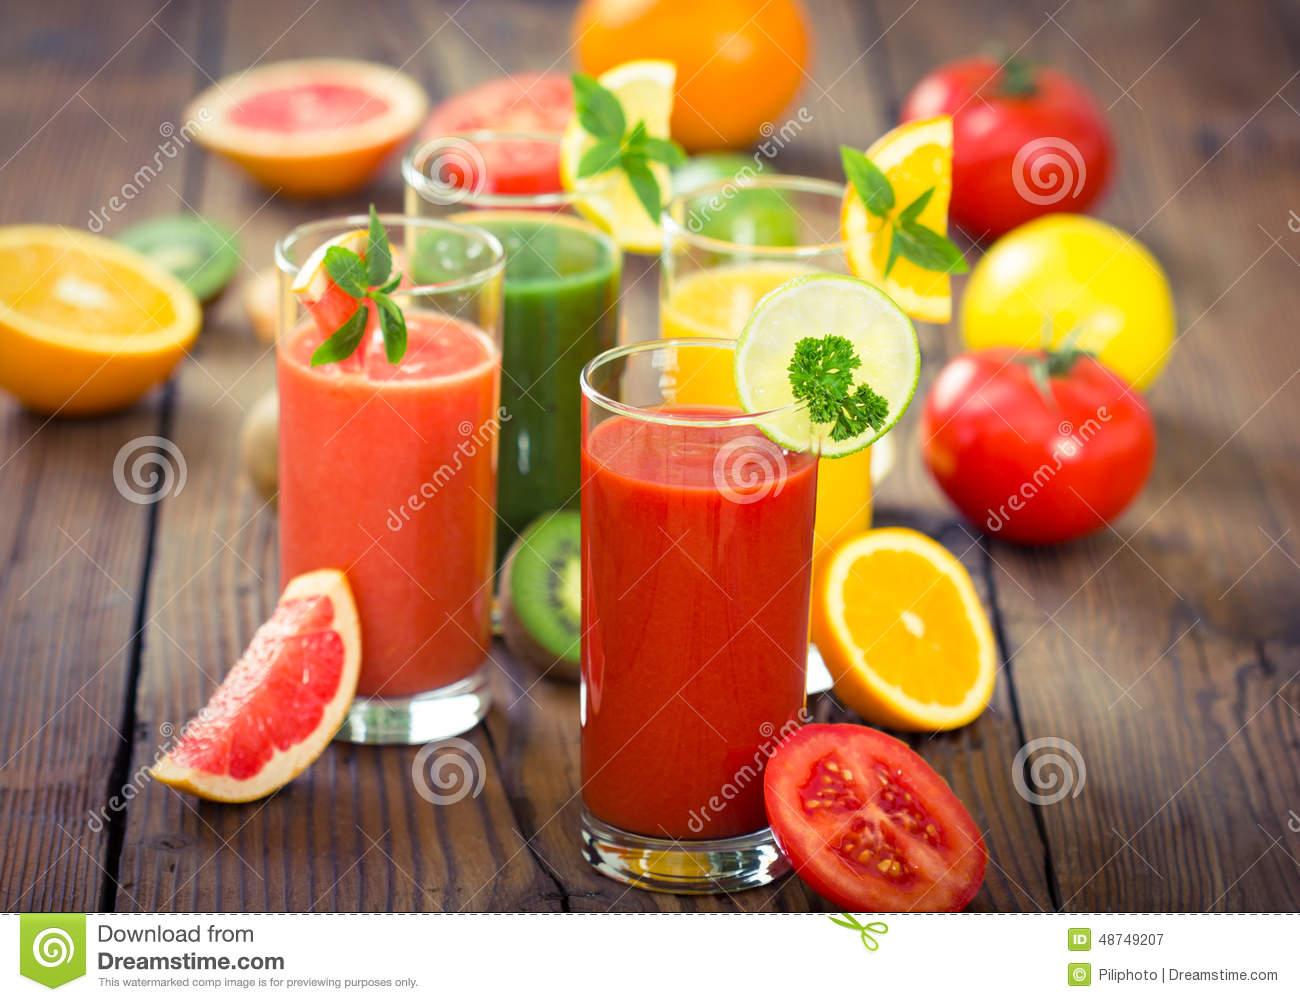 is a pumpkin a fruit or a vegetable are fruit smoothies healthy for you